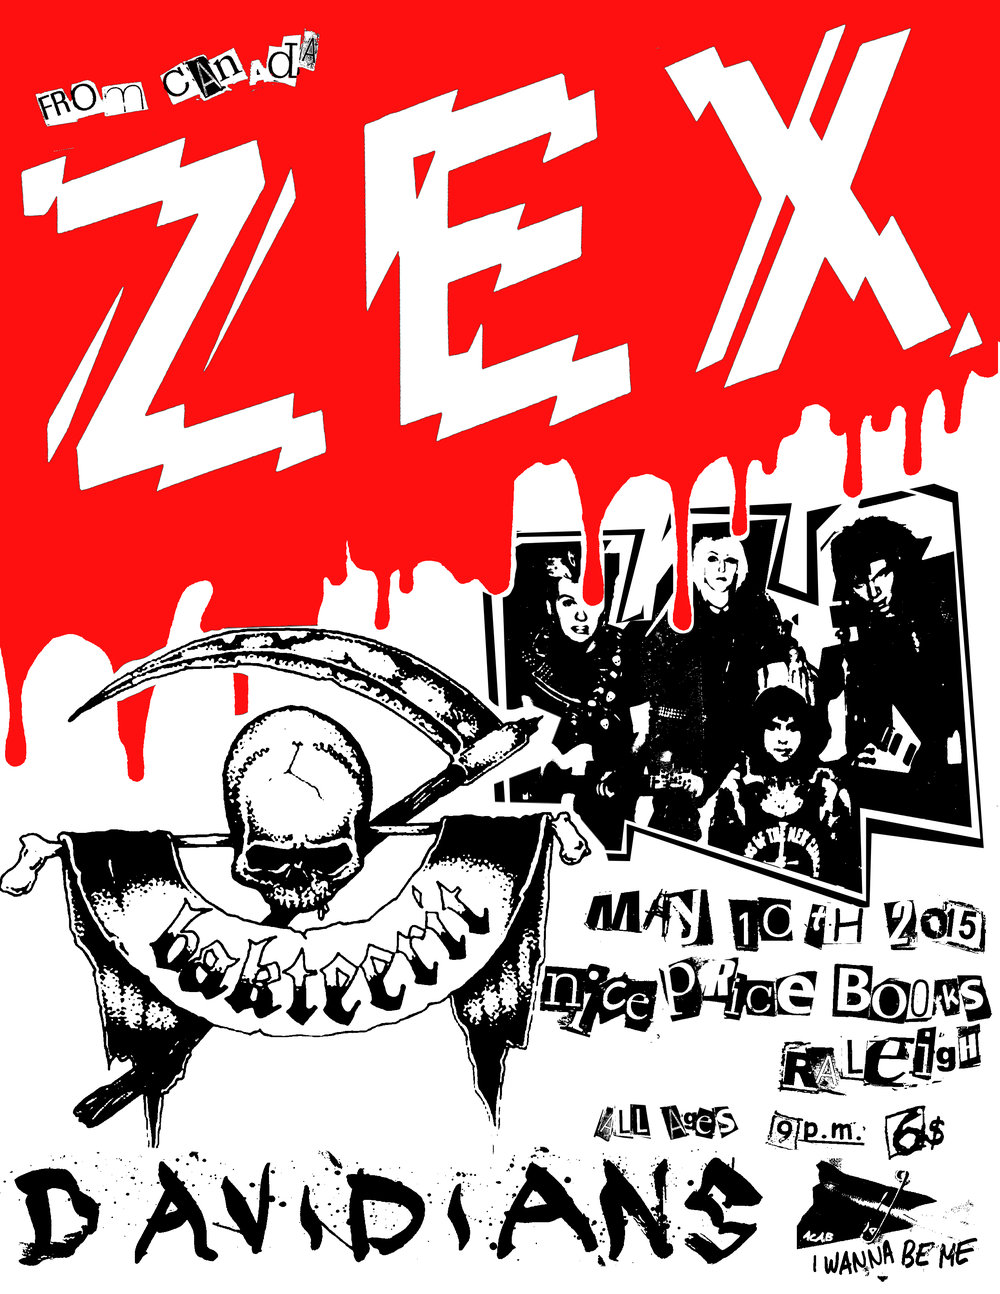 flyer-15.05.10-raleigh-zex-red.jpg